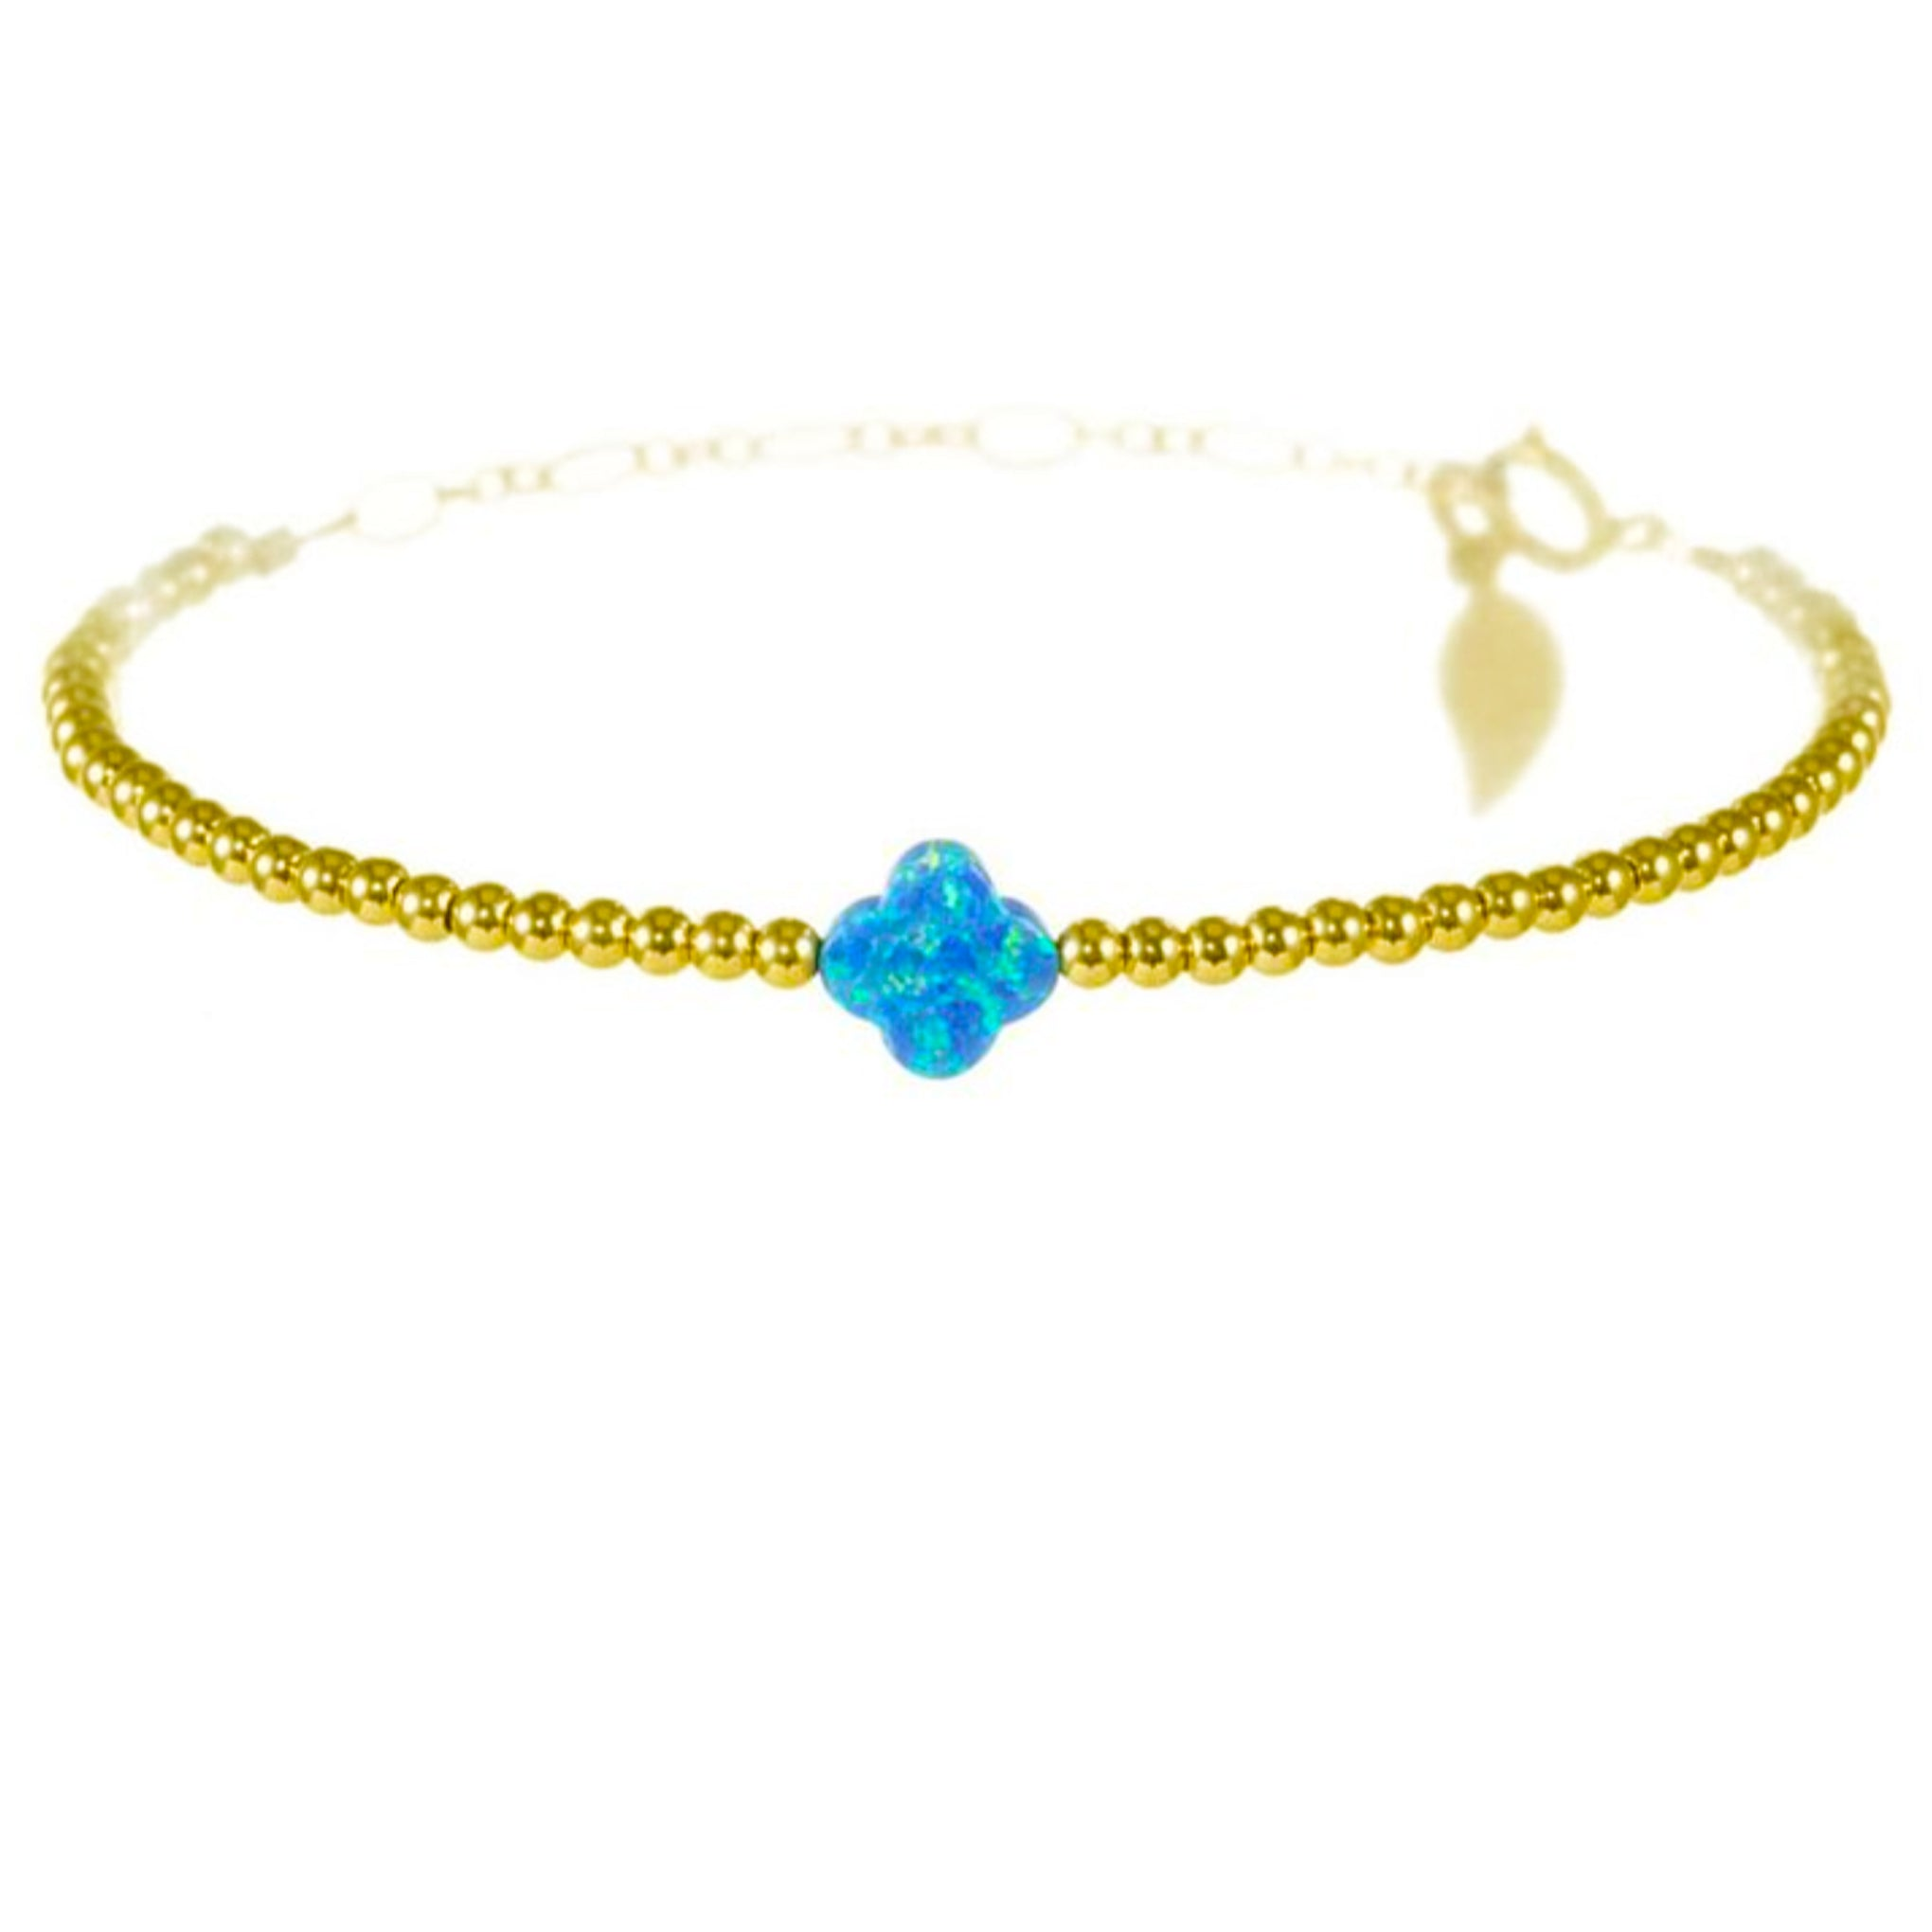 Rainbow Chanceux Clover Baby Blue Pearl 14KT Gold Ball Beads Bracelet in Butterfly Vibe Collection